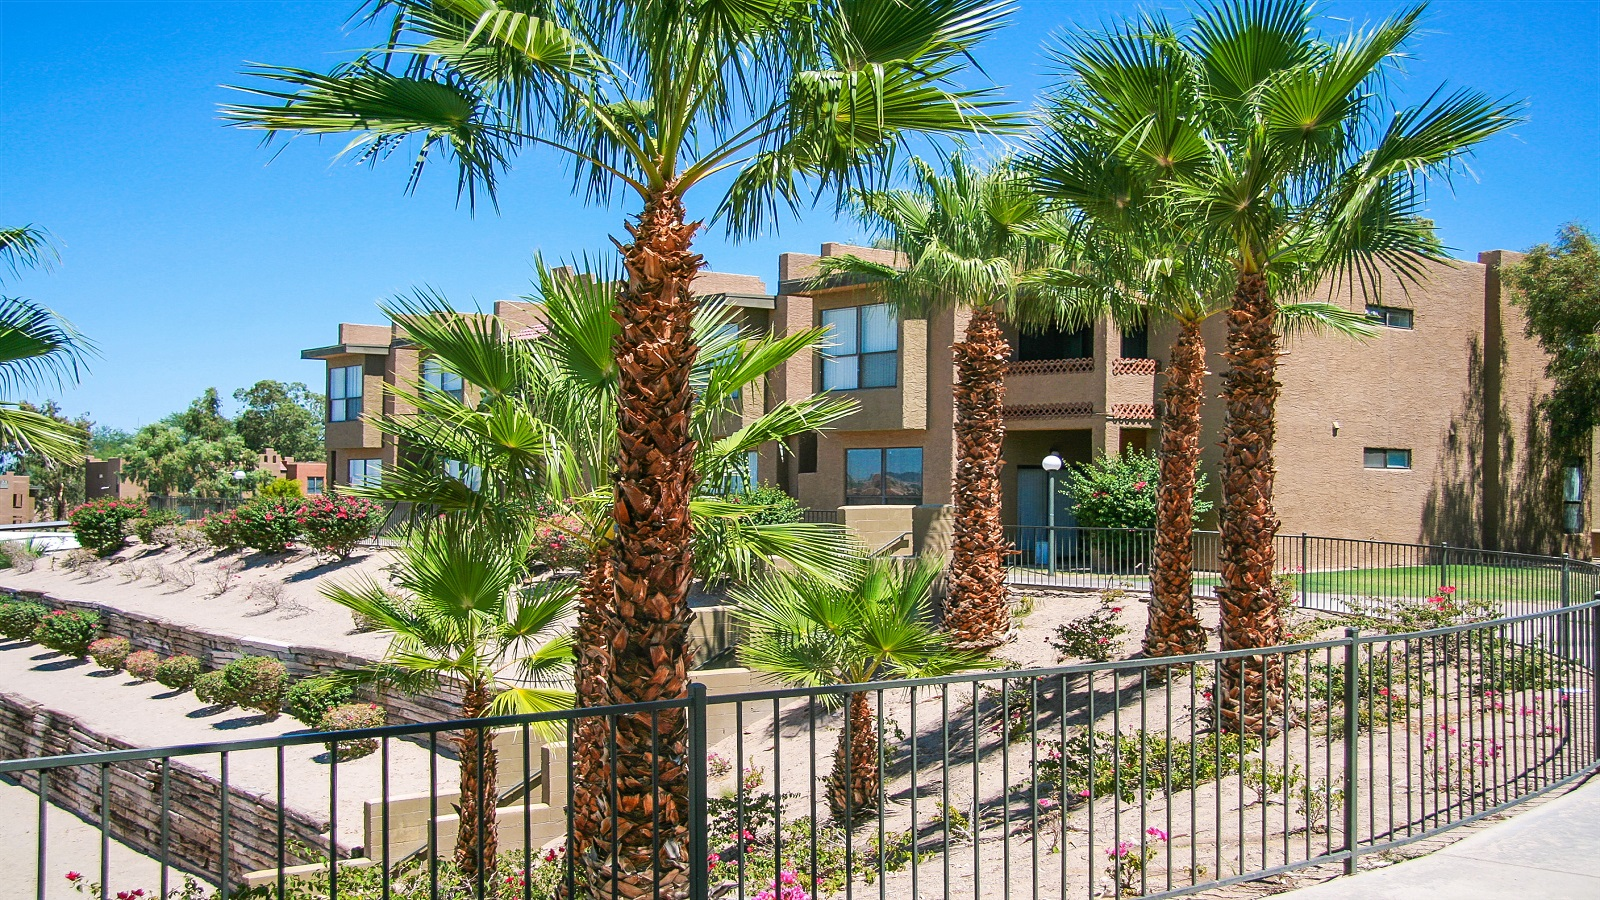 Rio Santa Fe Apartments | 1600 West 12th Street, Yuma, AZ 85364 | 312 Units | Built in 1990 | $19,500,000 | $62,500 Per Unit | $69.63 Per SF